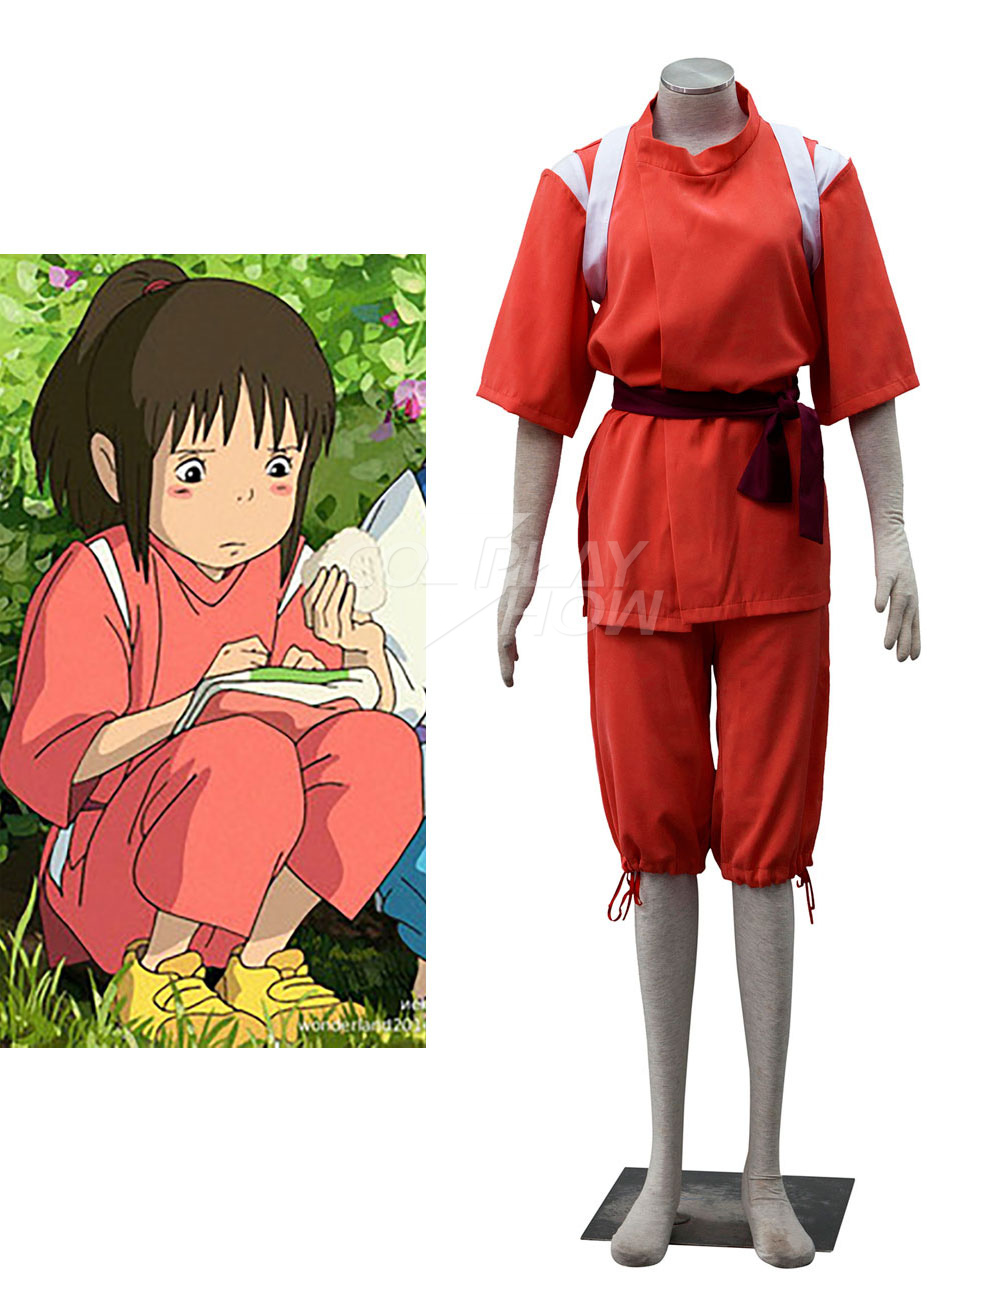 Animation Art Characters Halloween Spirited Away Ogino Chihiro Cosplay Costume Clothes Any Size Japanese Anime Collectibles